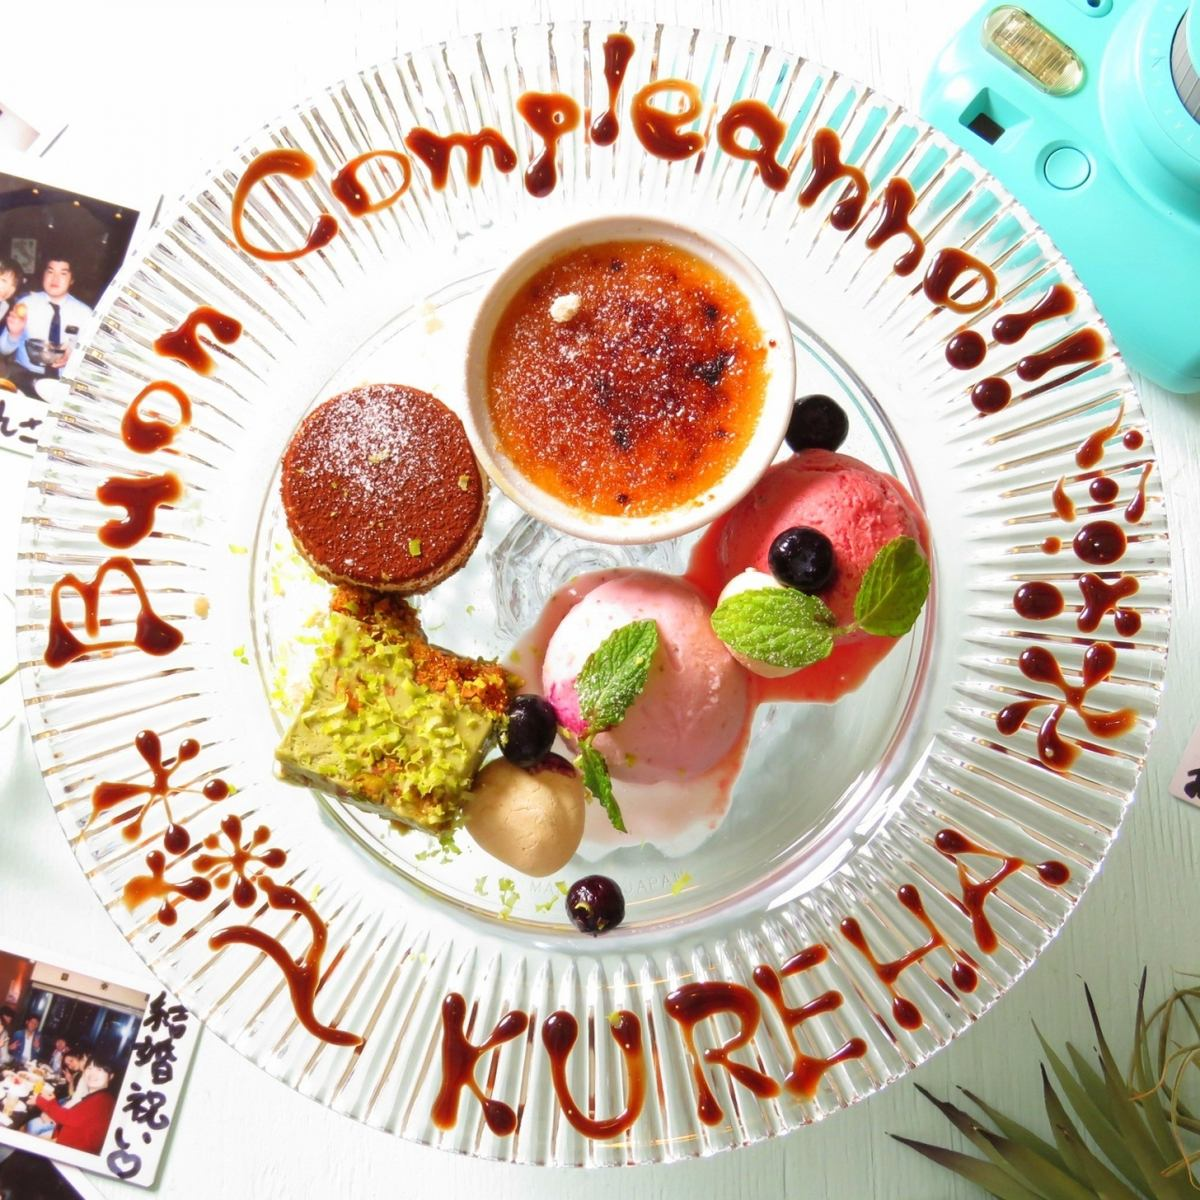 Message desert plate is attached free of charge for all courses ☆